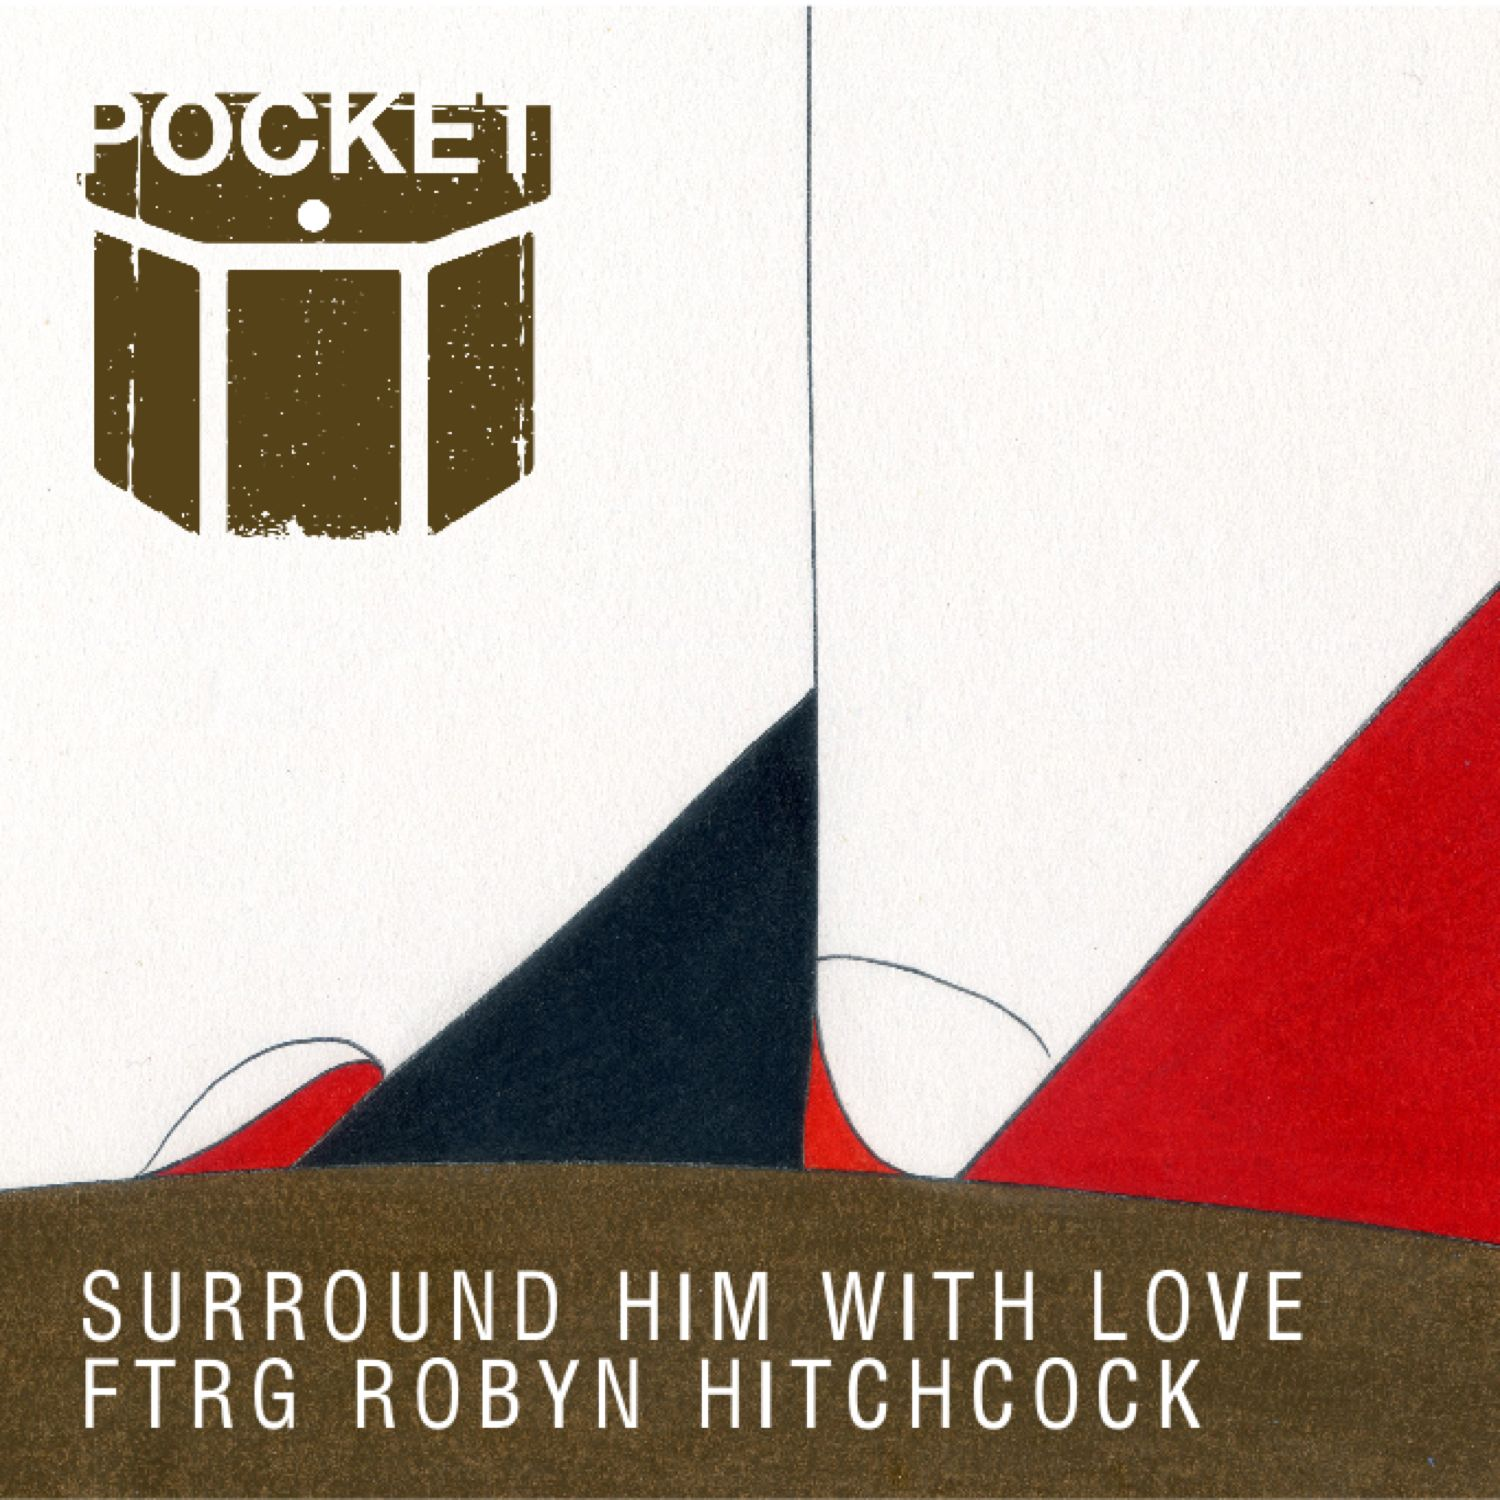 Pocket - Surround Him With Love (CD Single)